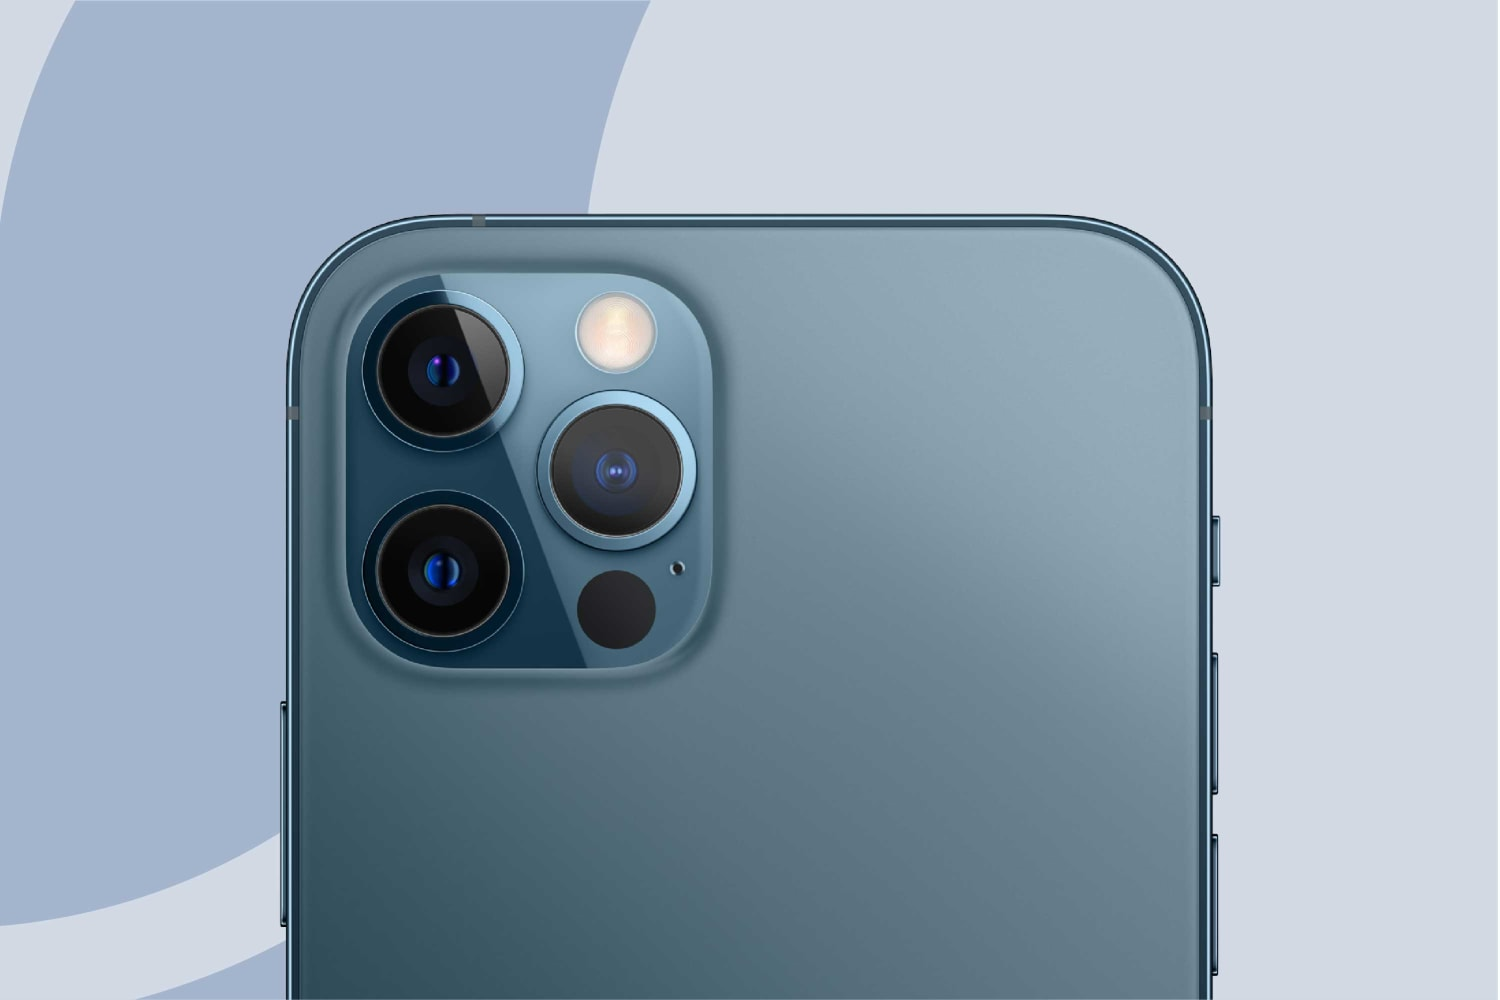 impressive-iphone-12-pro-and-pro-max-camera-upgrades-with-lidar-scanner-20201013-1